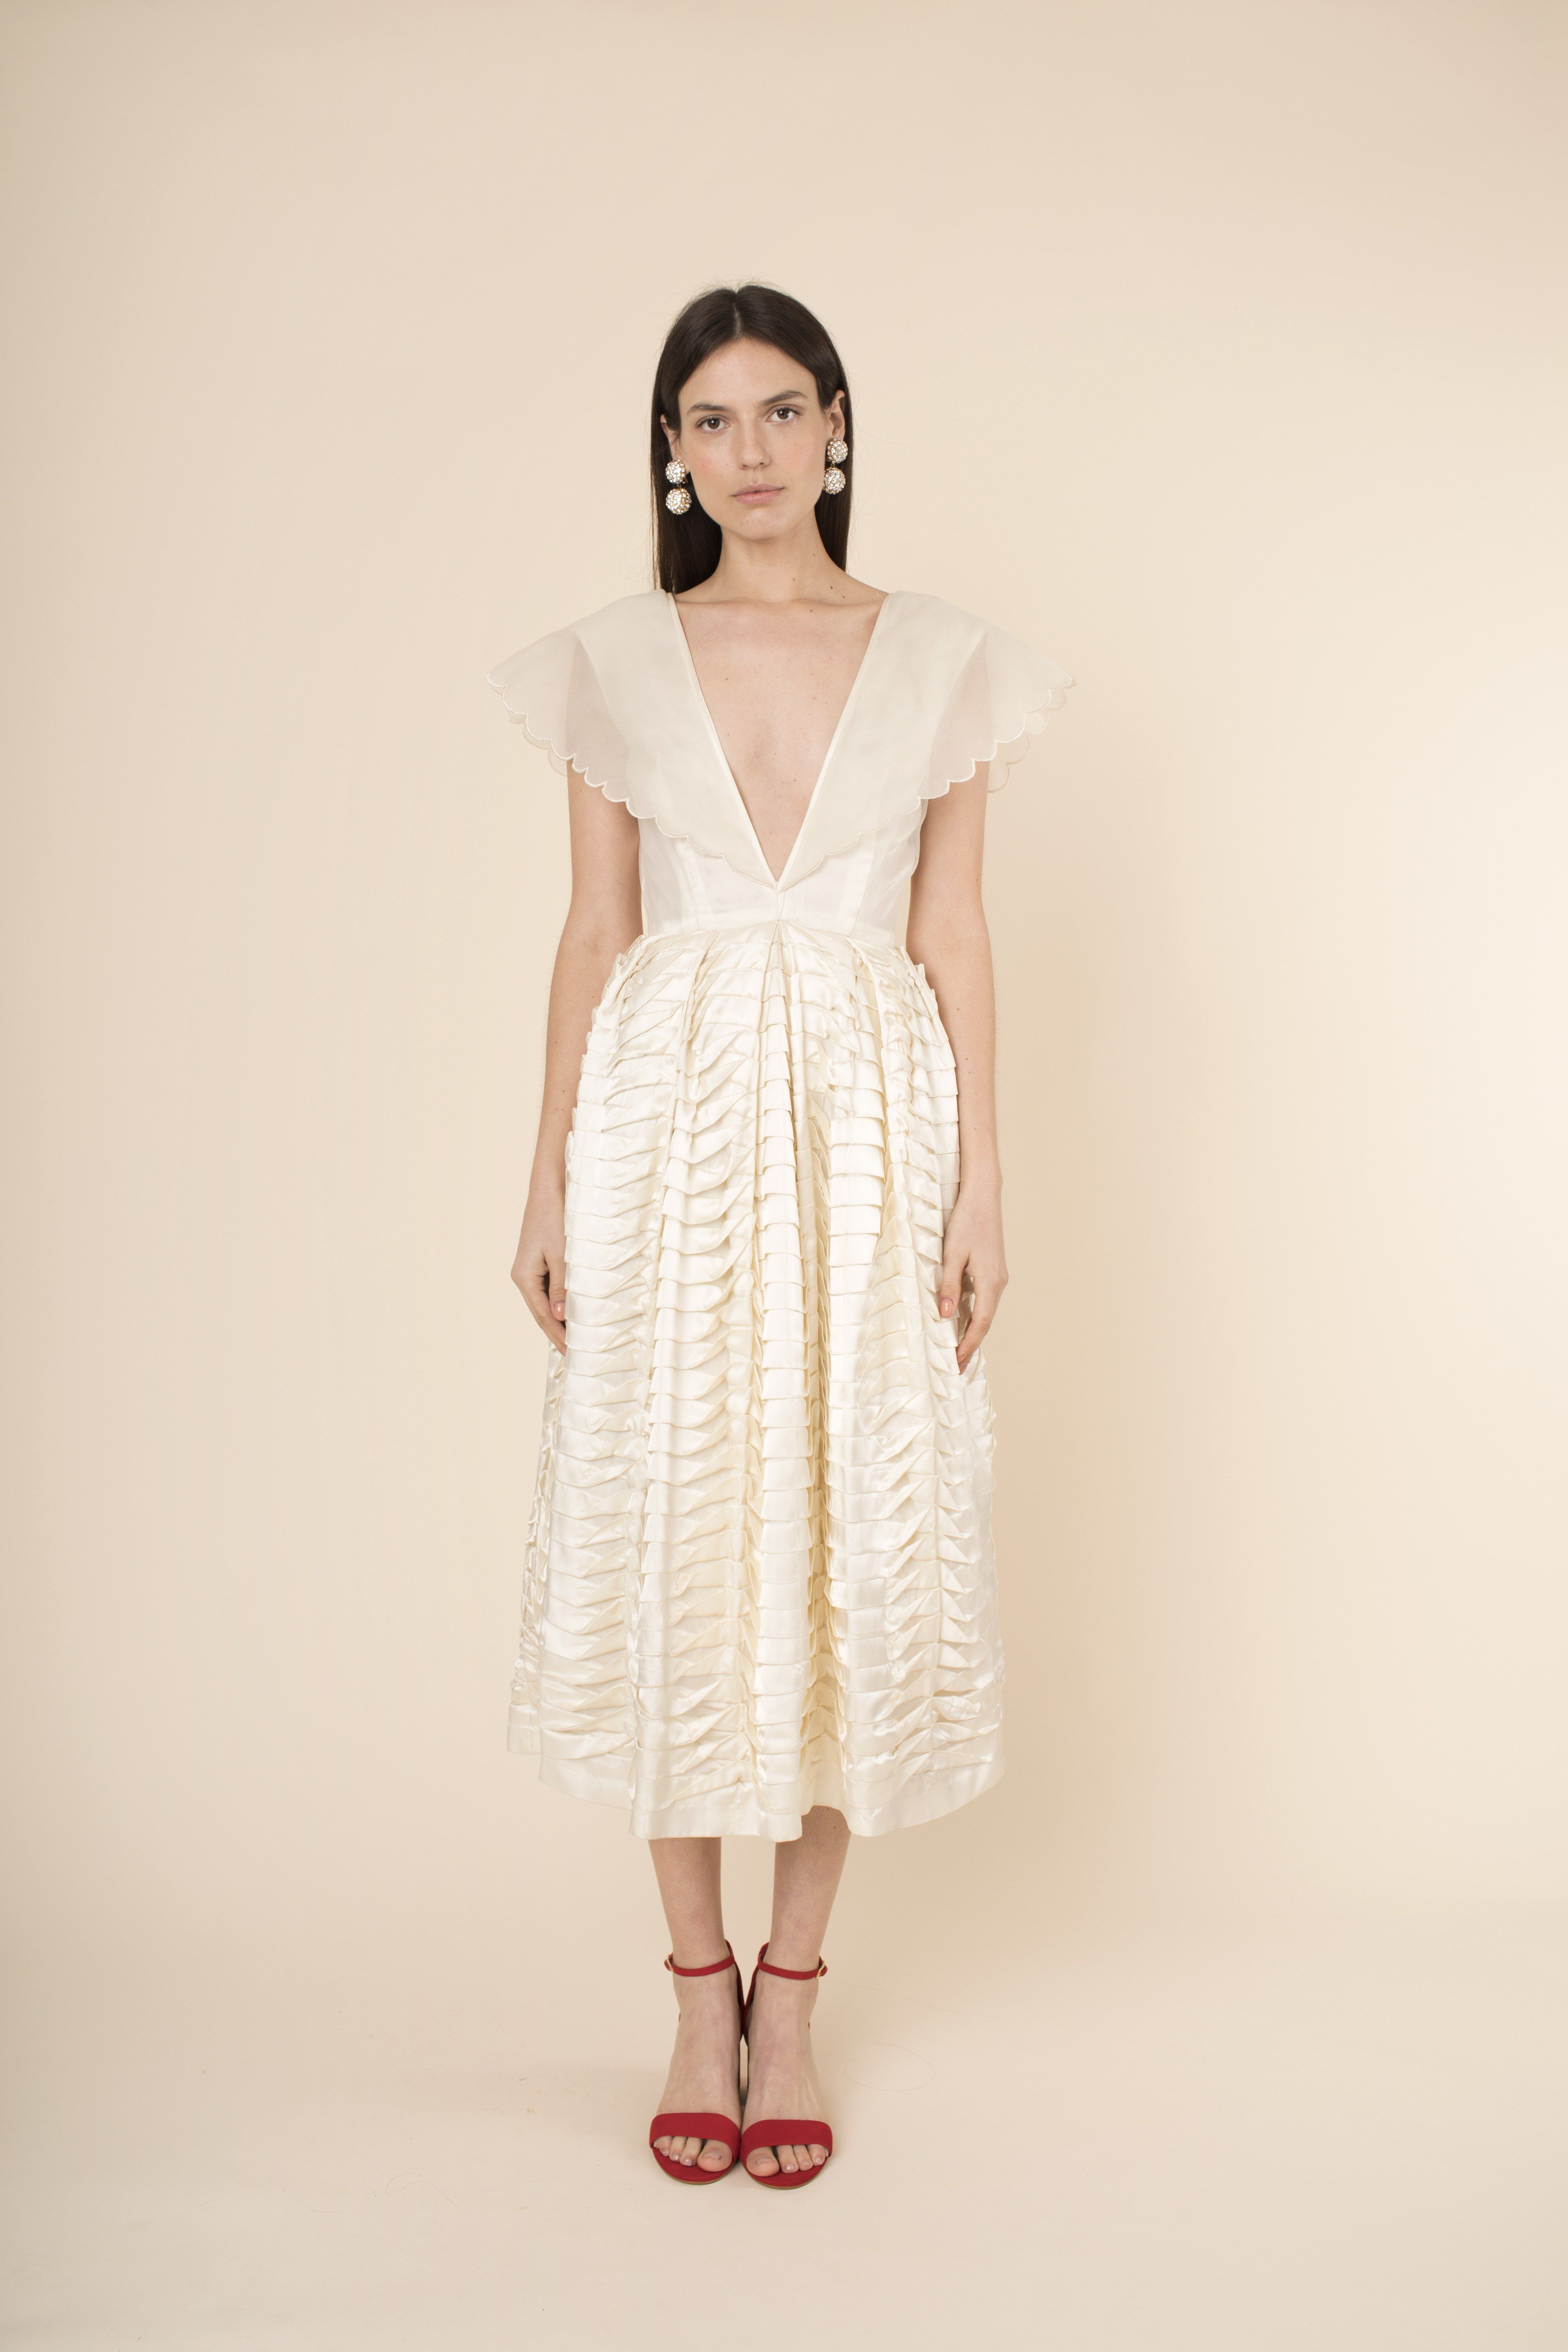 1940s style wedding dresses  These  Vintage Dress Styles Are Making A Comeback  Wedding Dresses